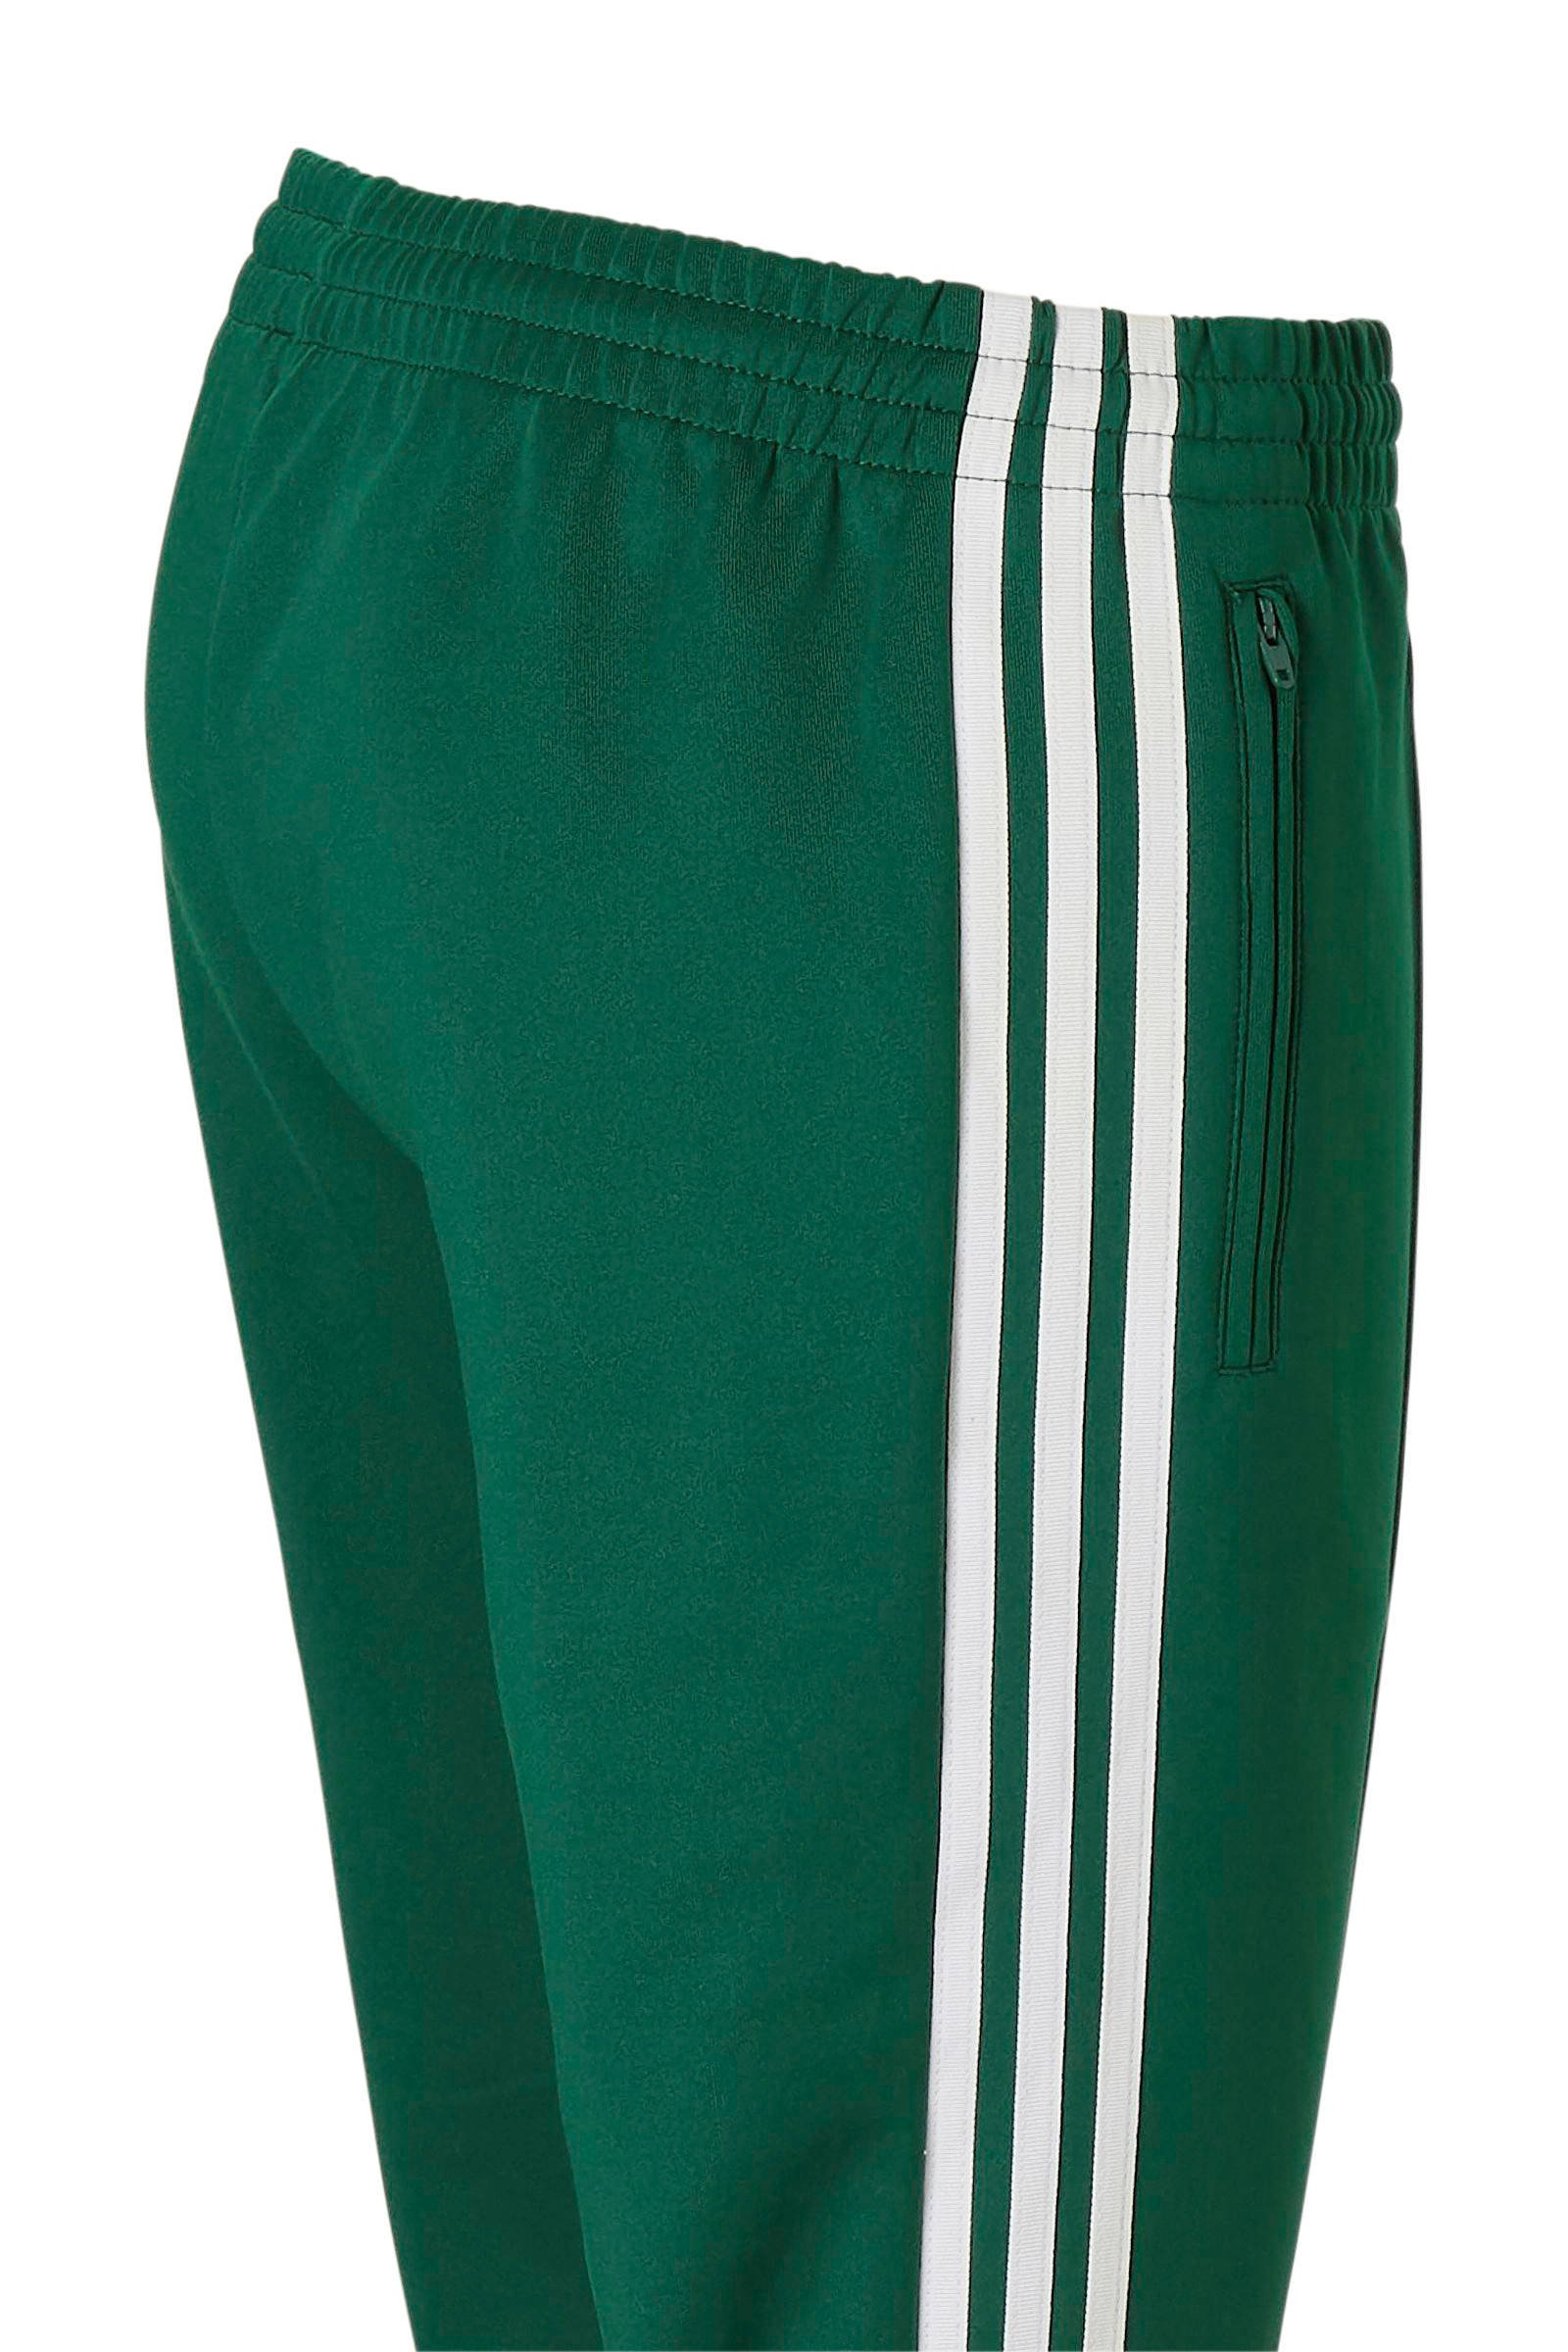 adidas Originals trainingsbroek groen | wehkamp